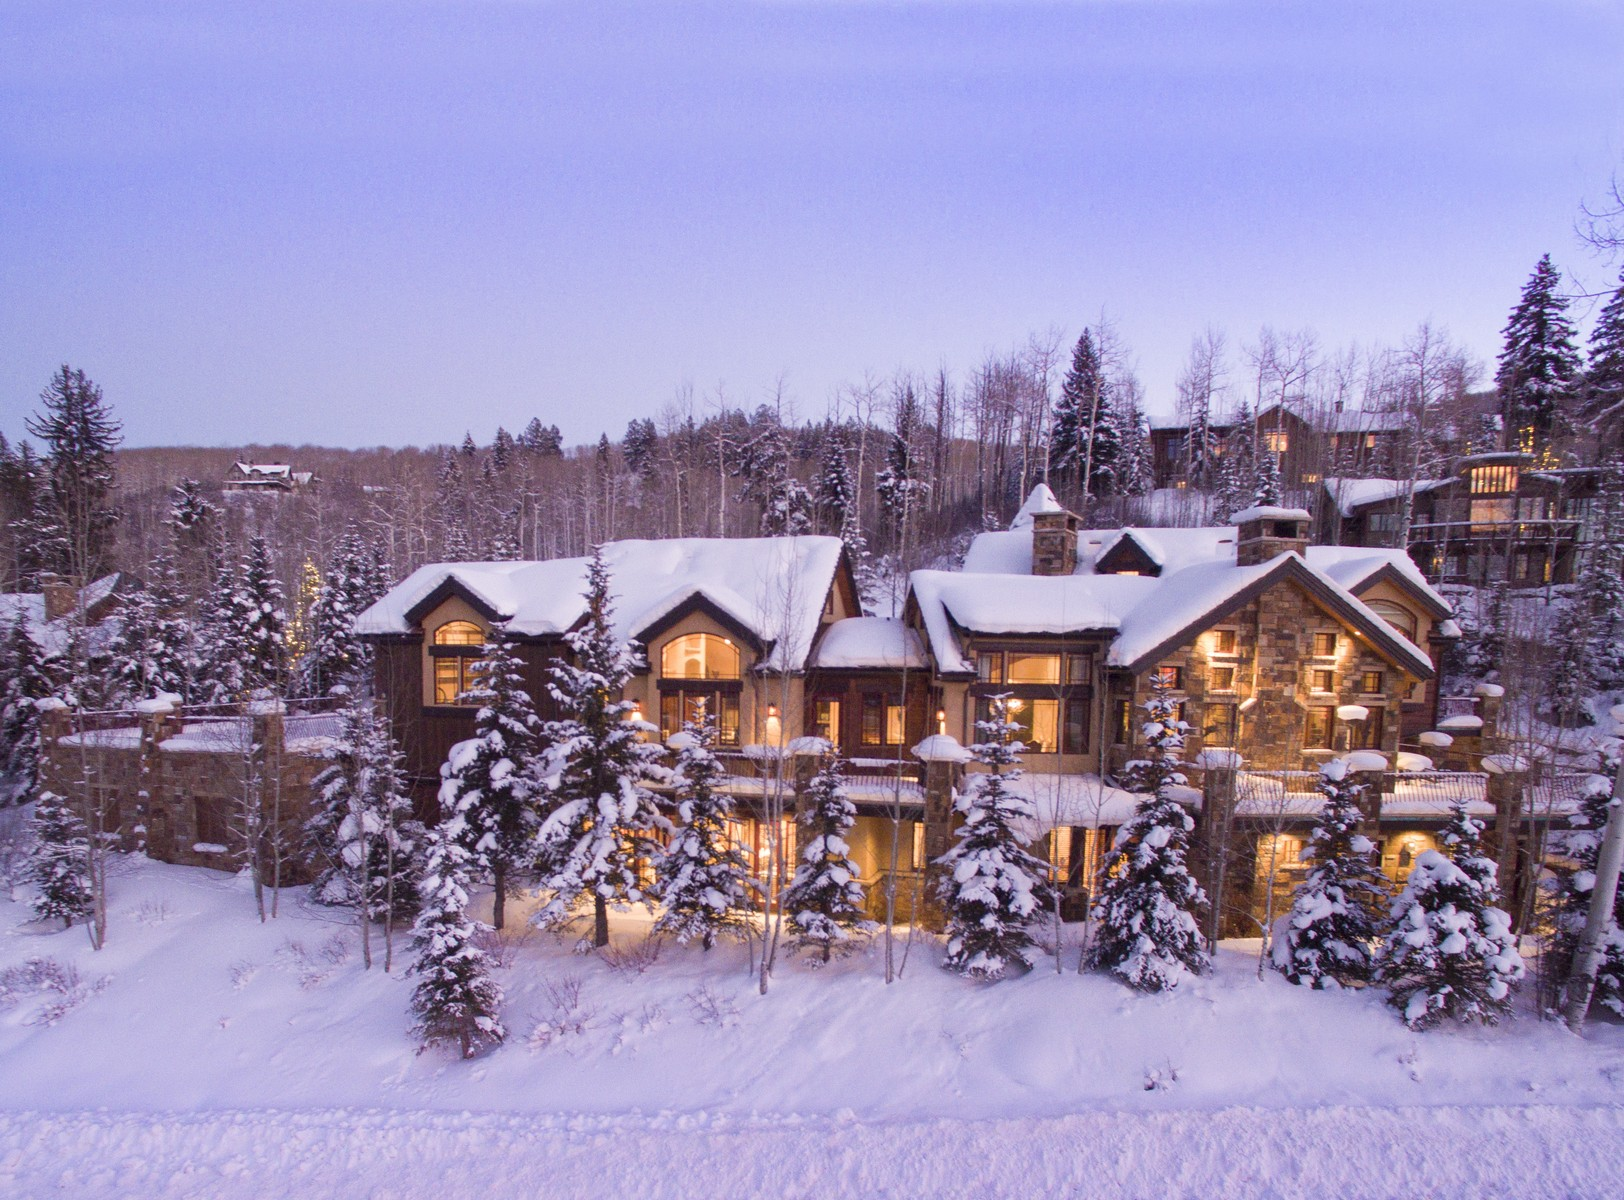 Moradia para Venda às Home in The Pines 400 Pine Crest Drive Snowmass Village, Colorado, 81615 Estados Unidos